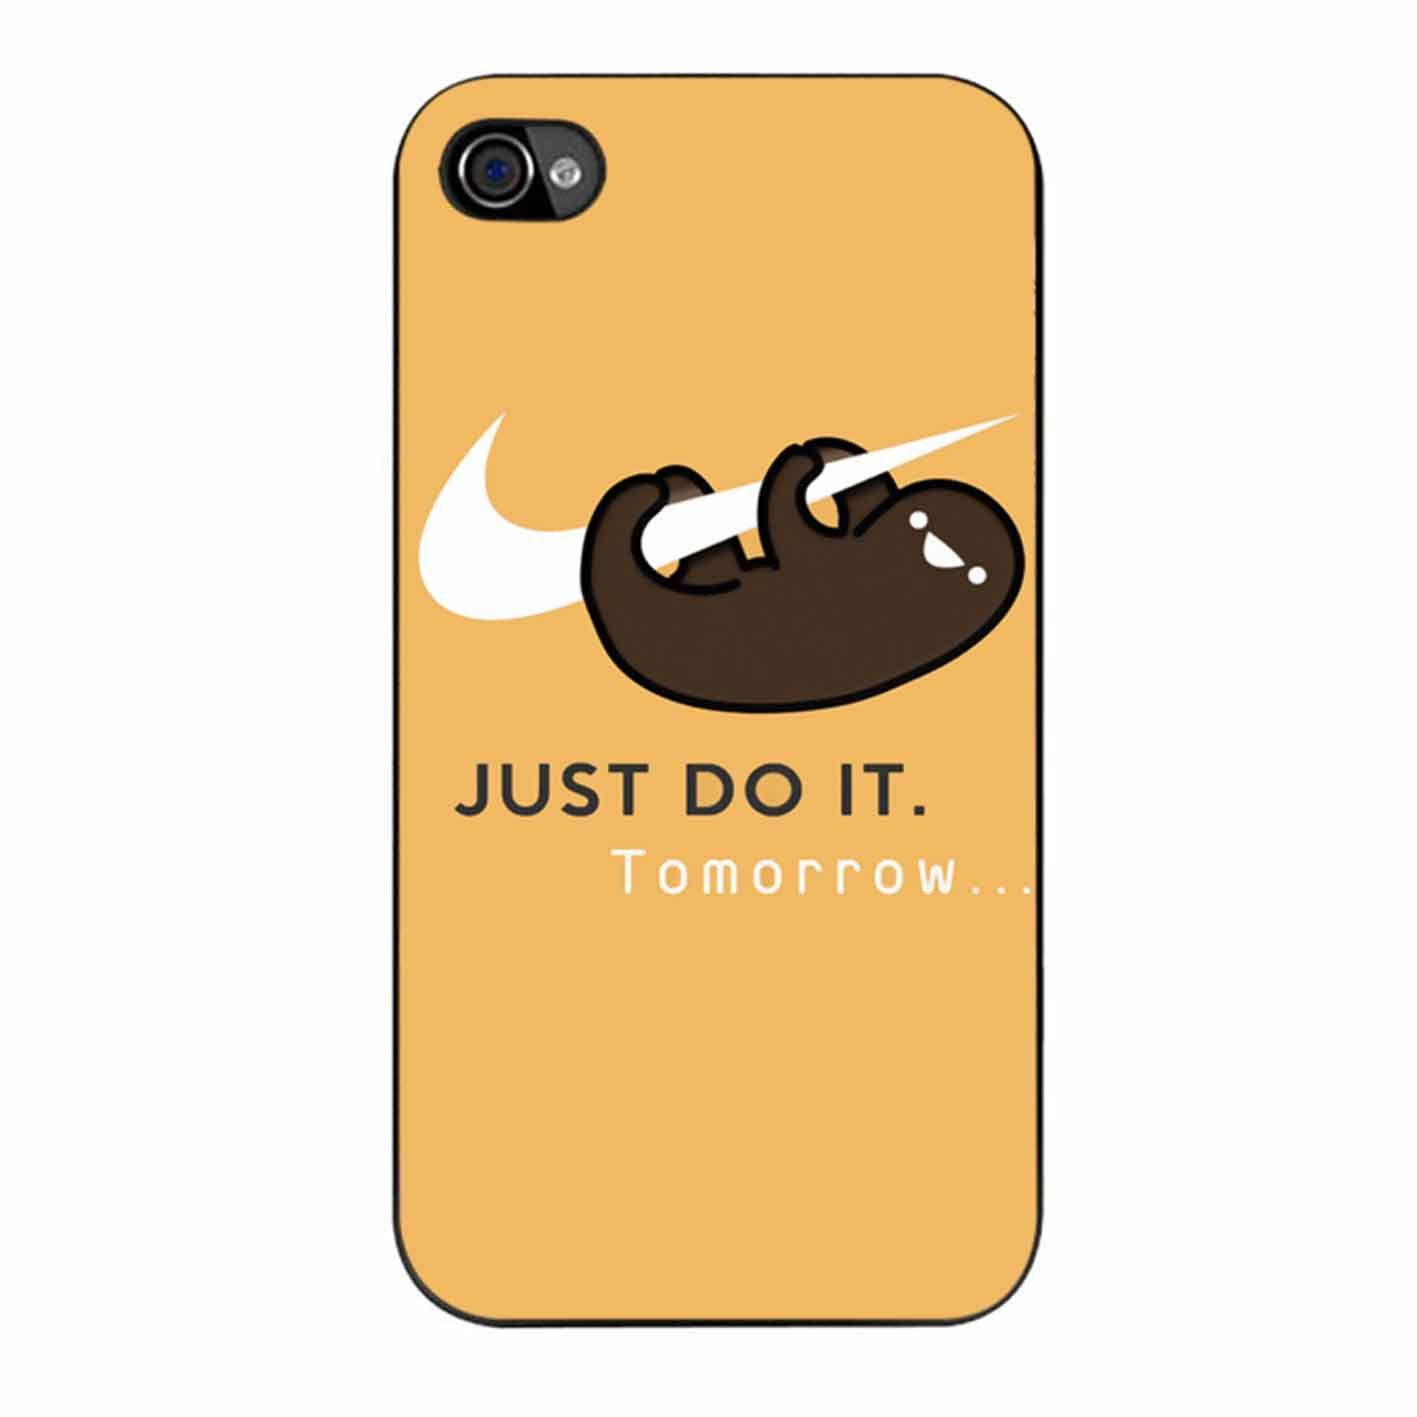 Sloth just do it iphone 4 4s case sloths iphone cases - Sloth wallpaper phone ...